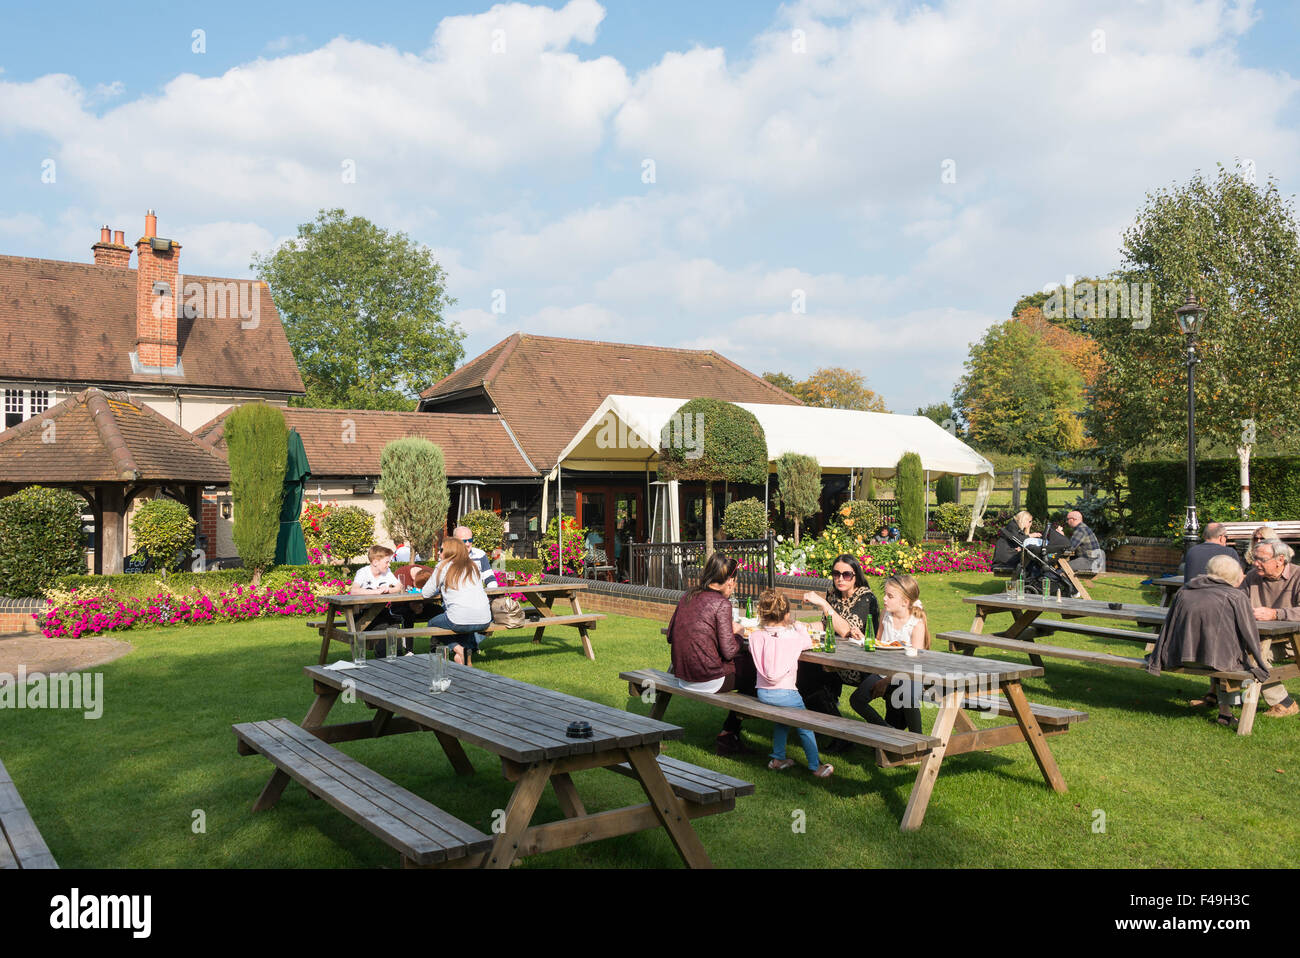 Beer garden at Half Moon Pub, Church Road, Windlesham, Surrey, England, United Kingdom - Stock Image